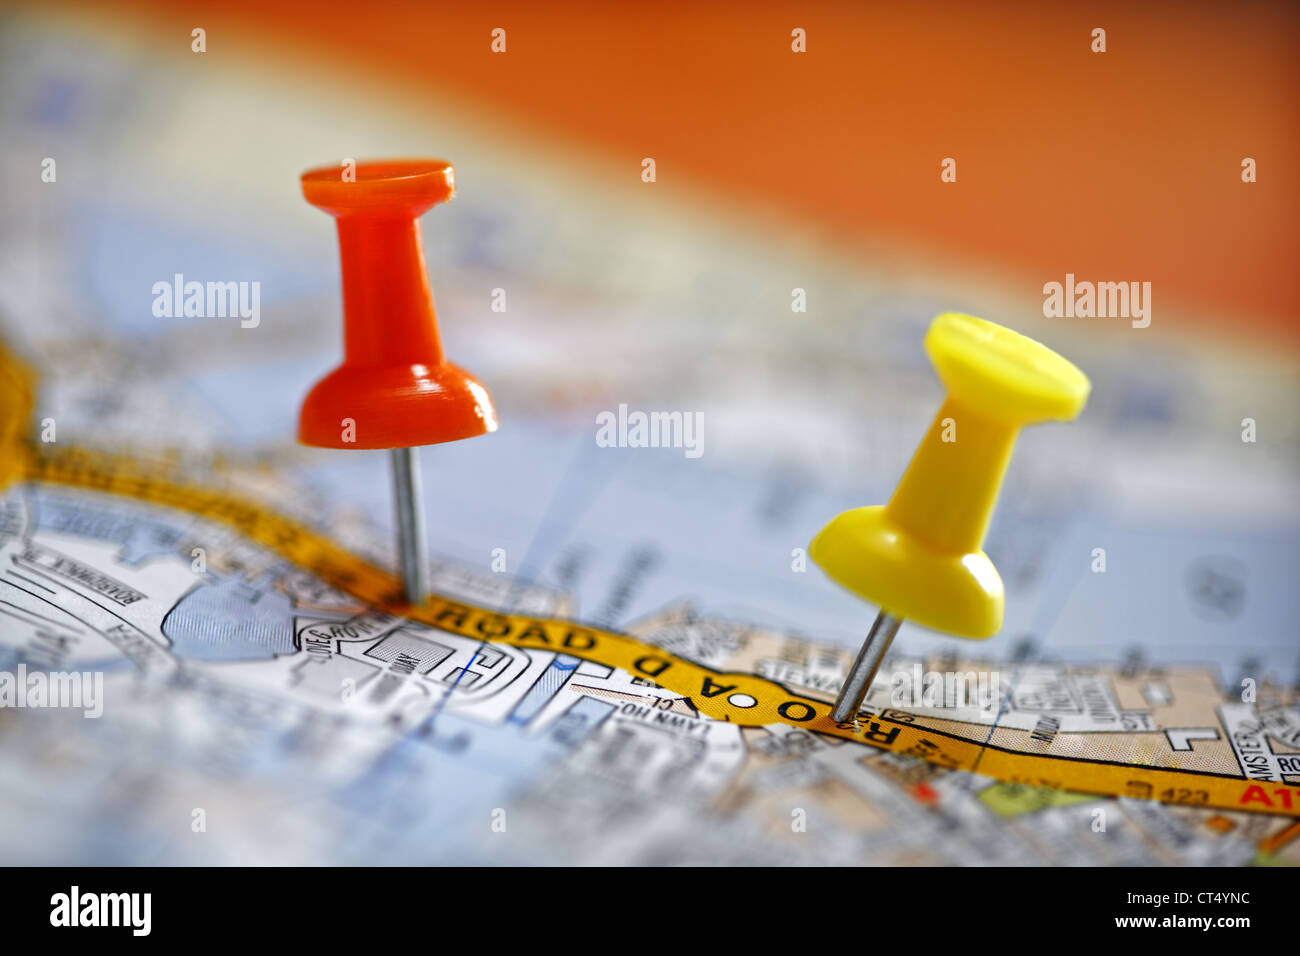 Pushpin on map - Stock Image